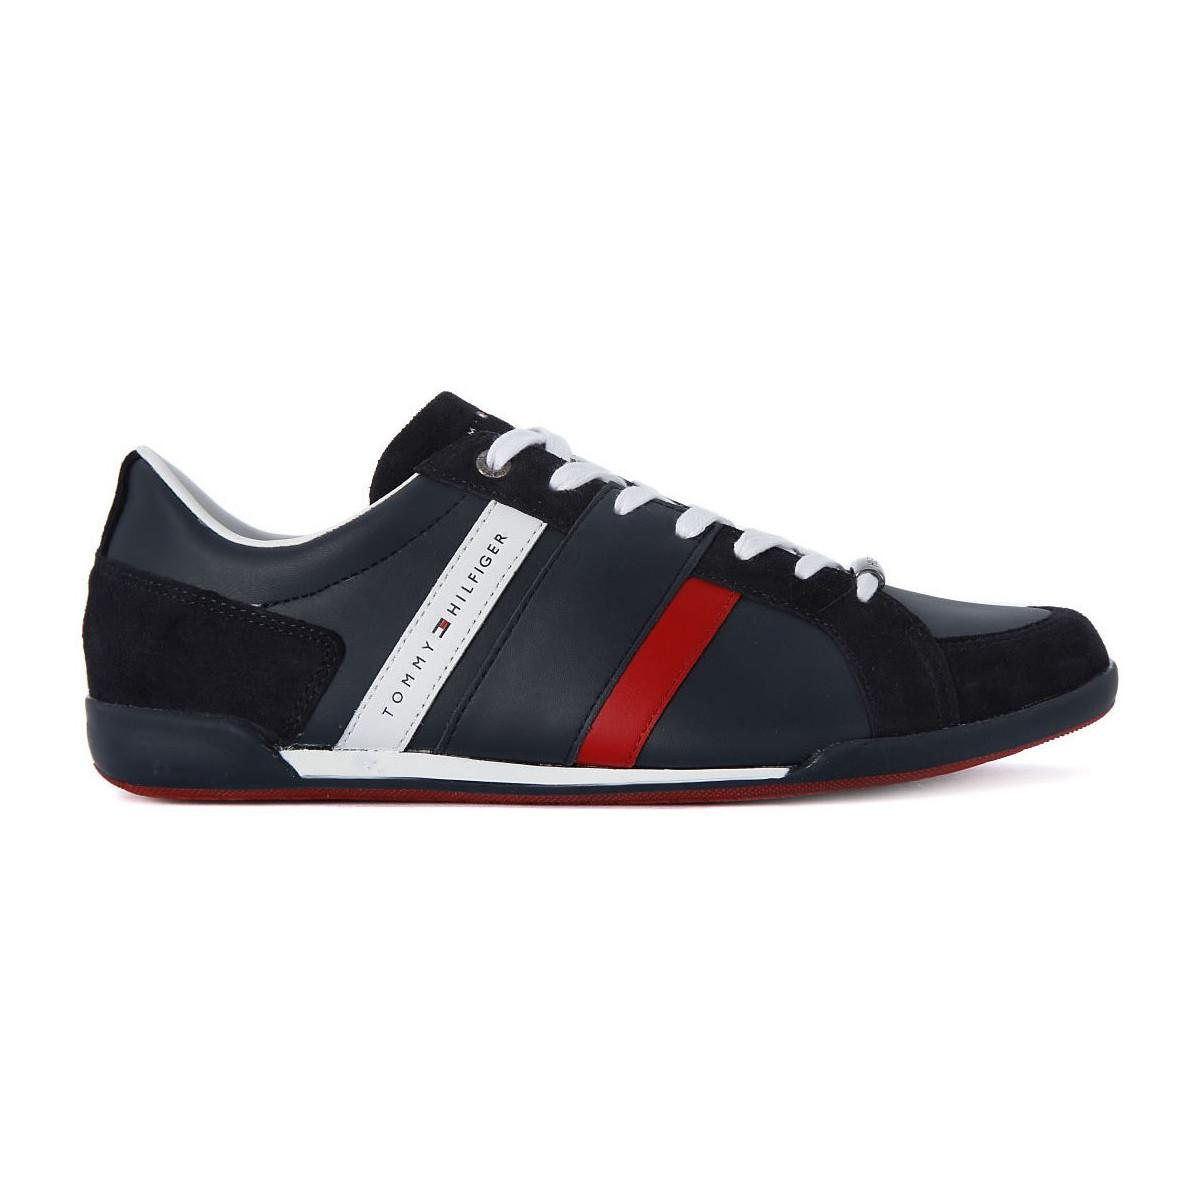 c15ecb3c04a3 Tommy Hilfiger Crosta Midnight Men s Shoes (trainers) In Blue in ...